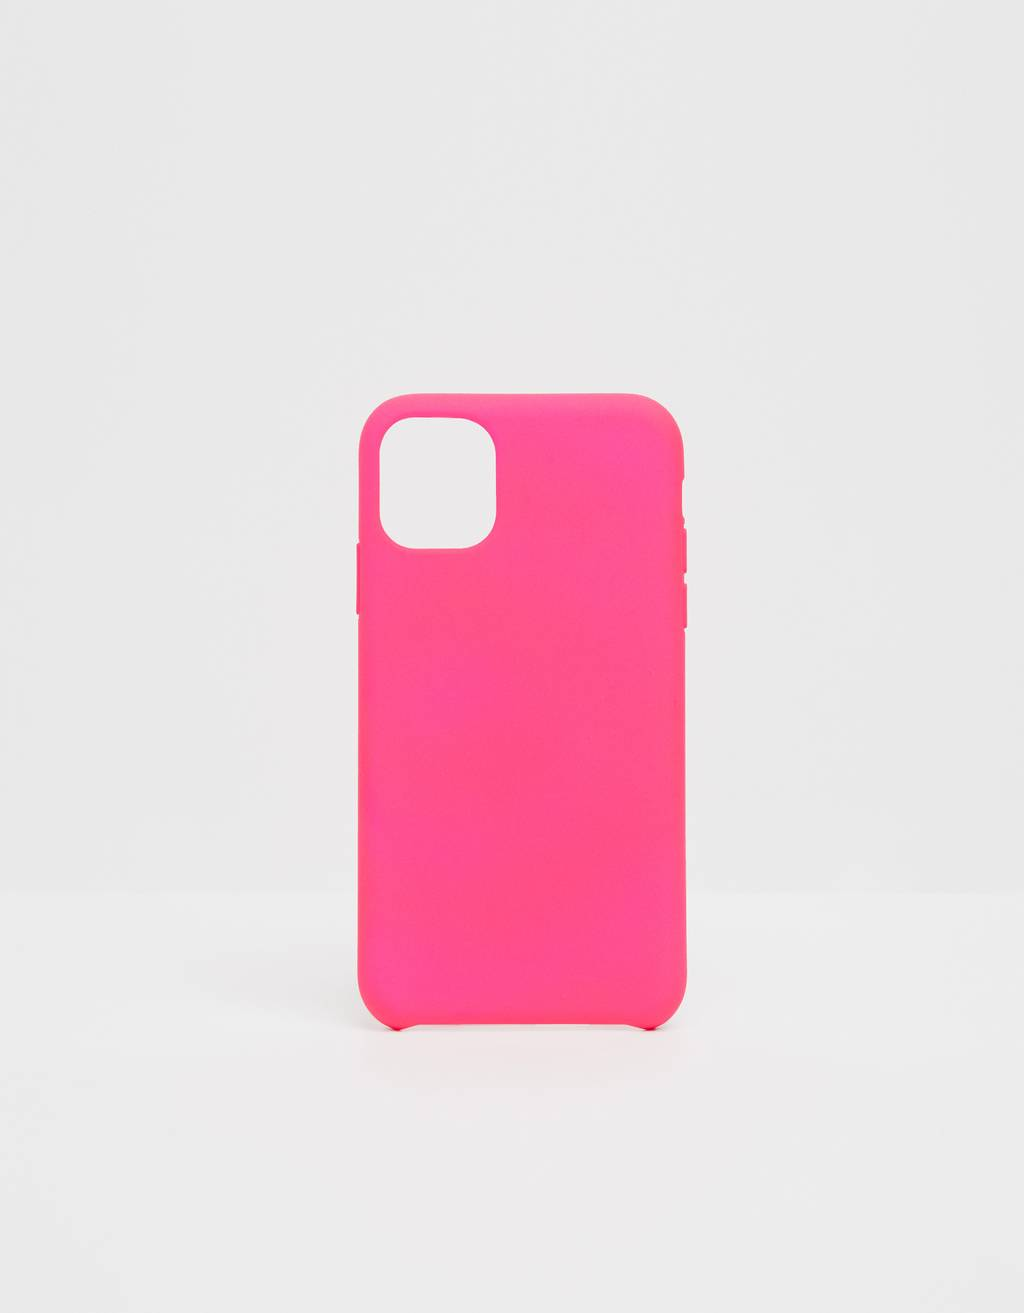 Capa monocolor iPhone 11 Pro